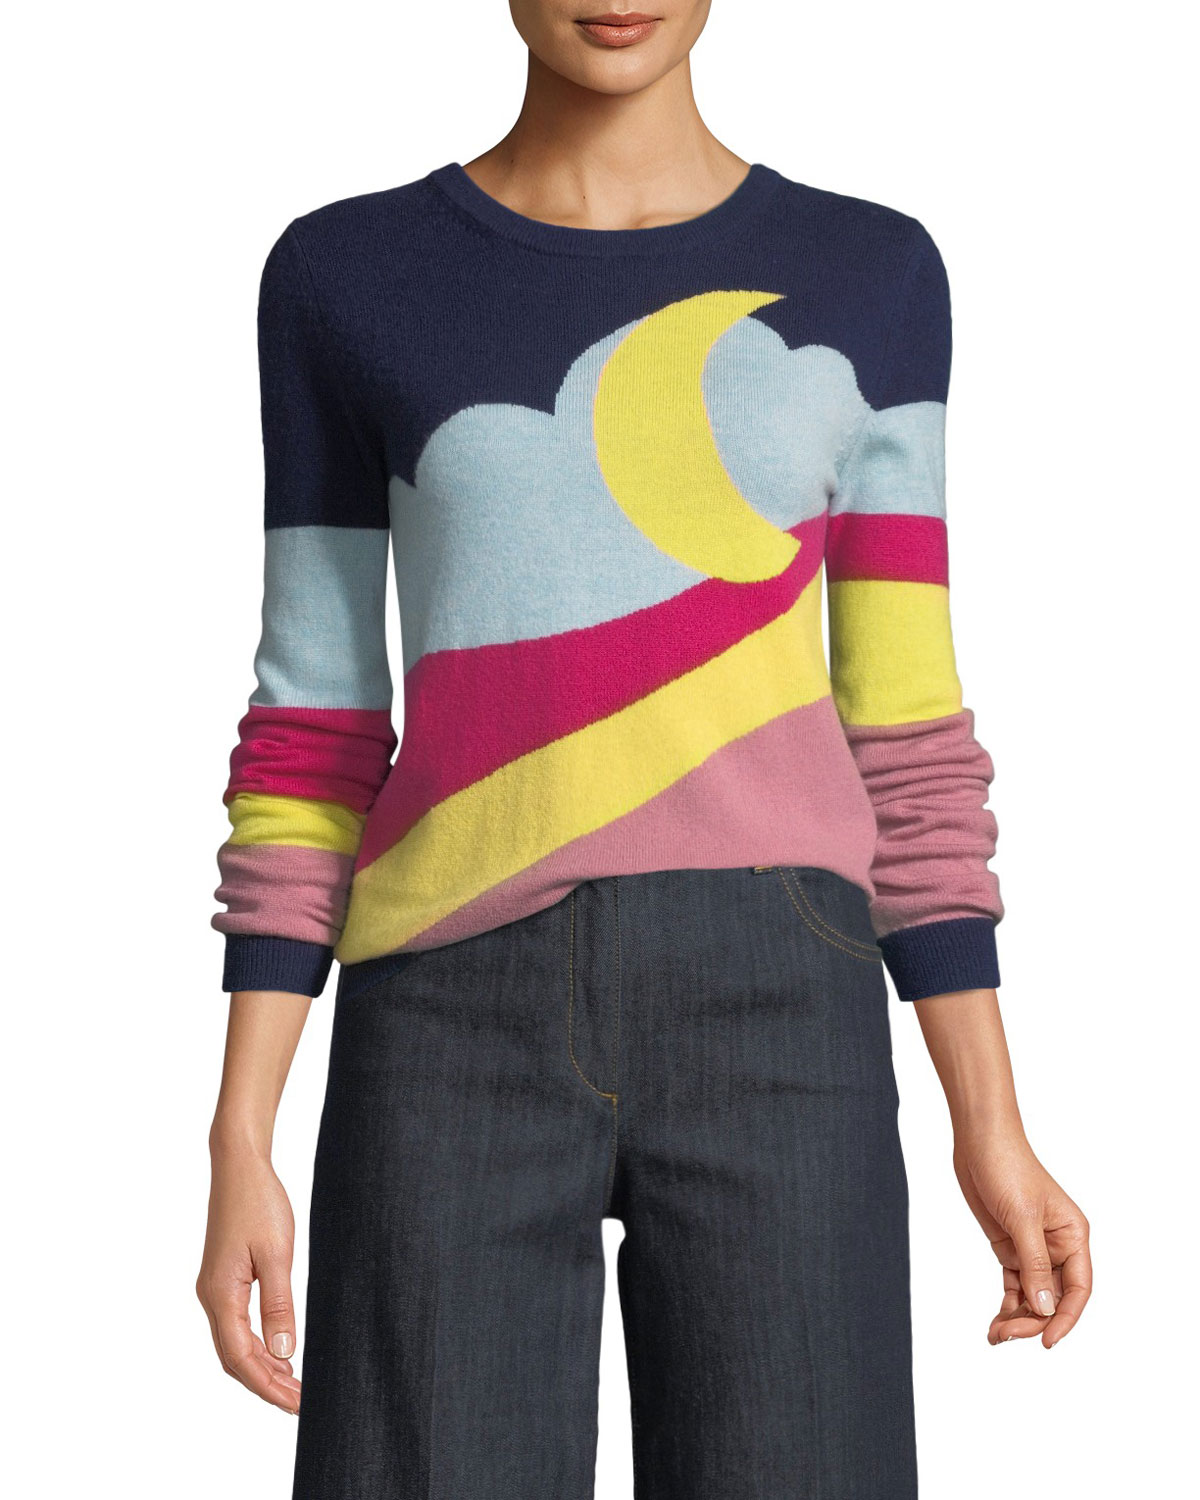 BOUTIQUE MOSCHINO Moon-Print Pullover Sweater, Fantasy Print Blu